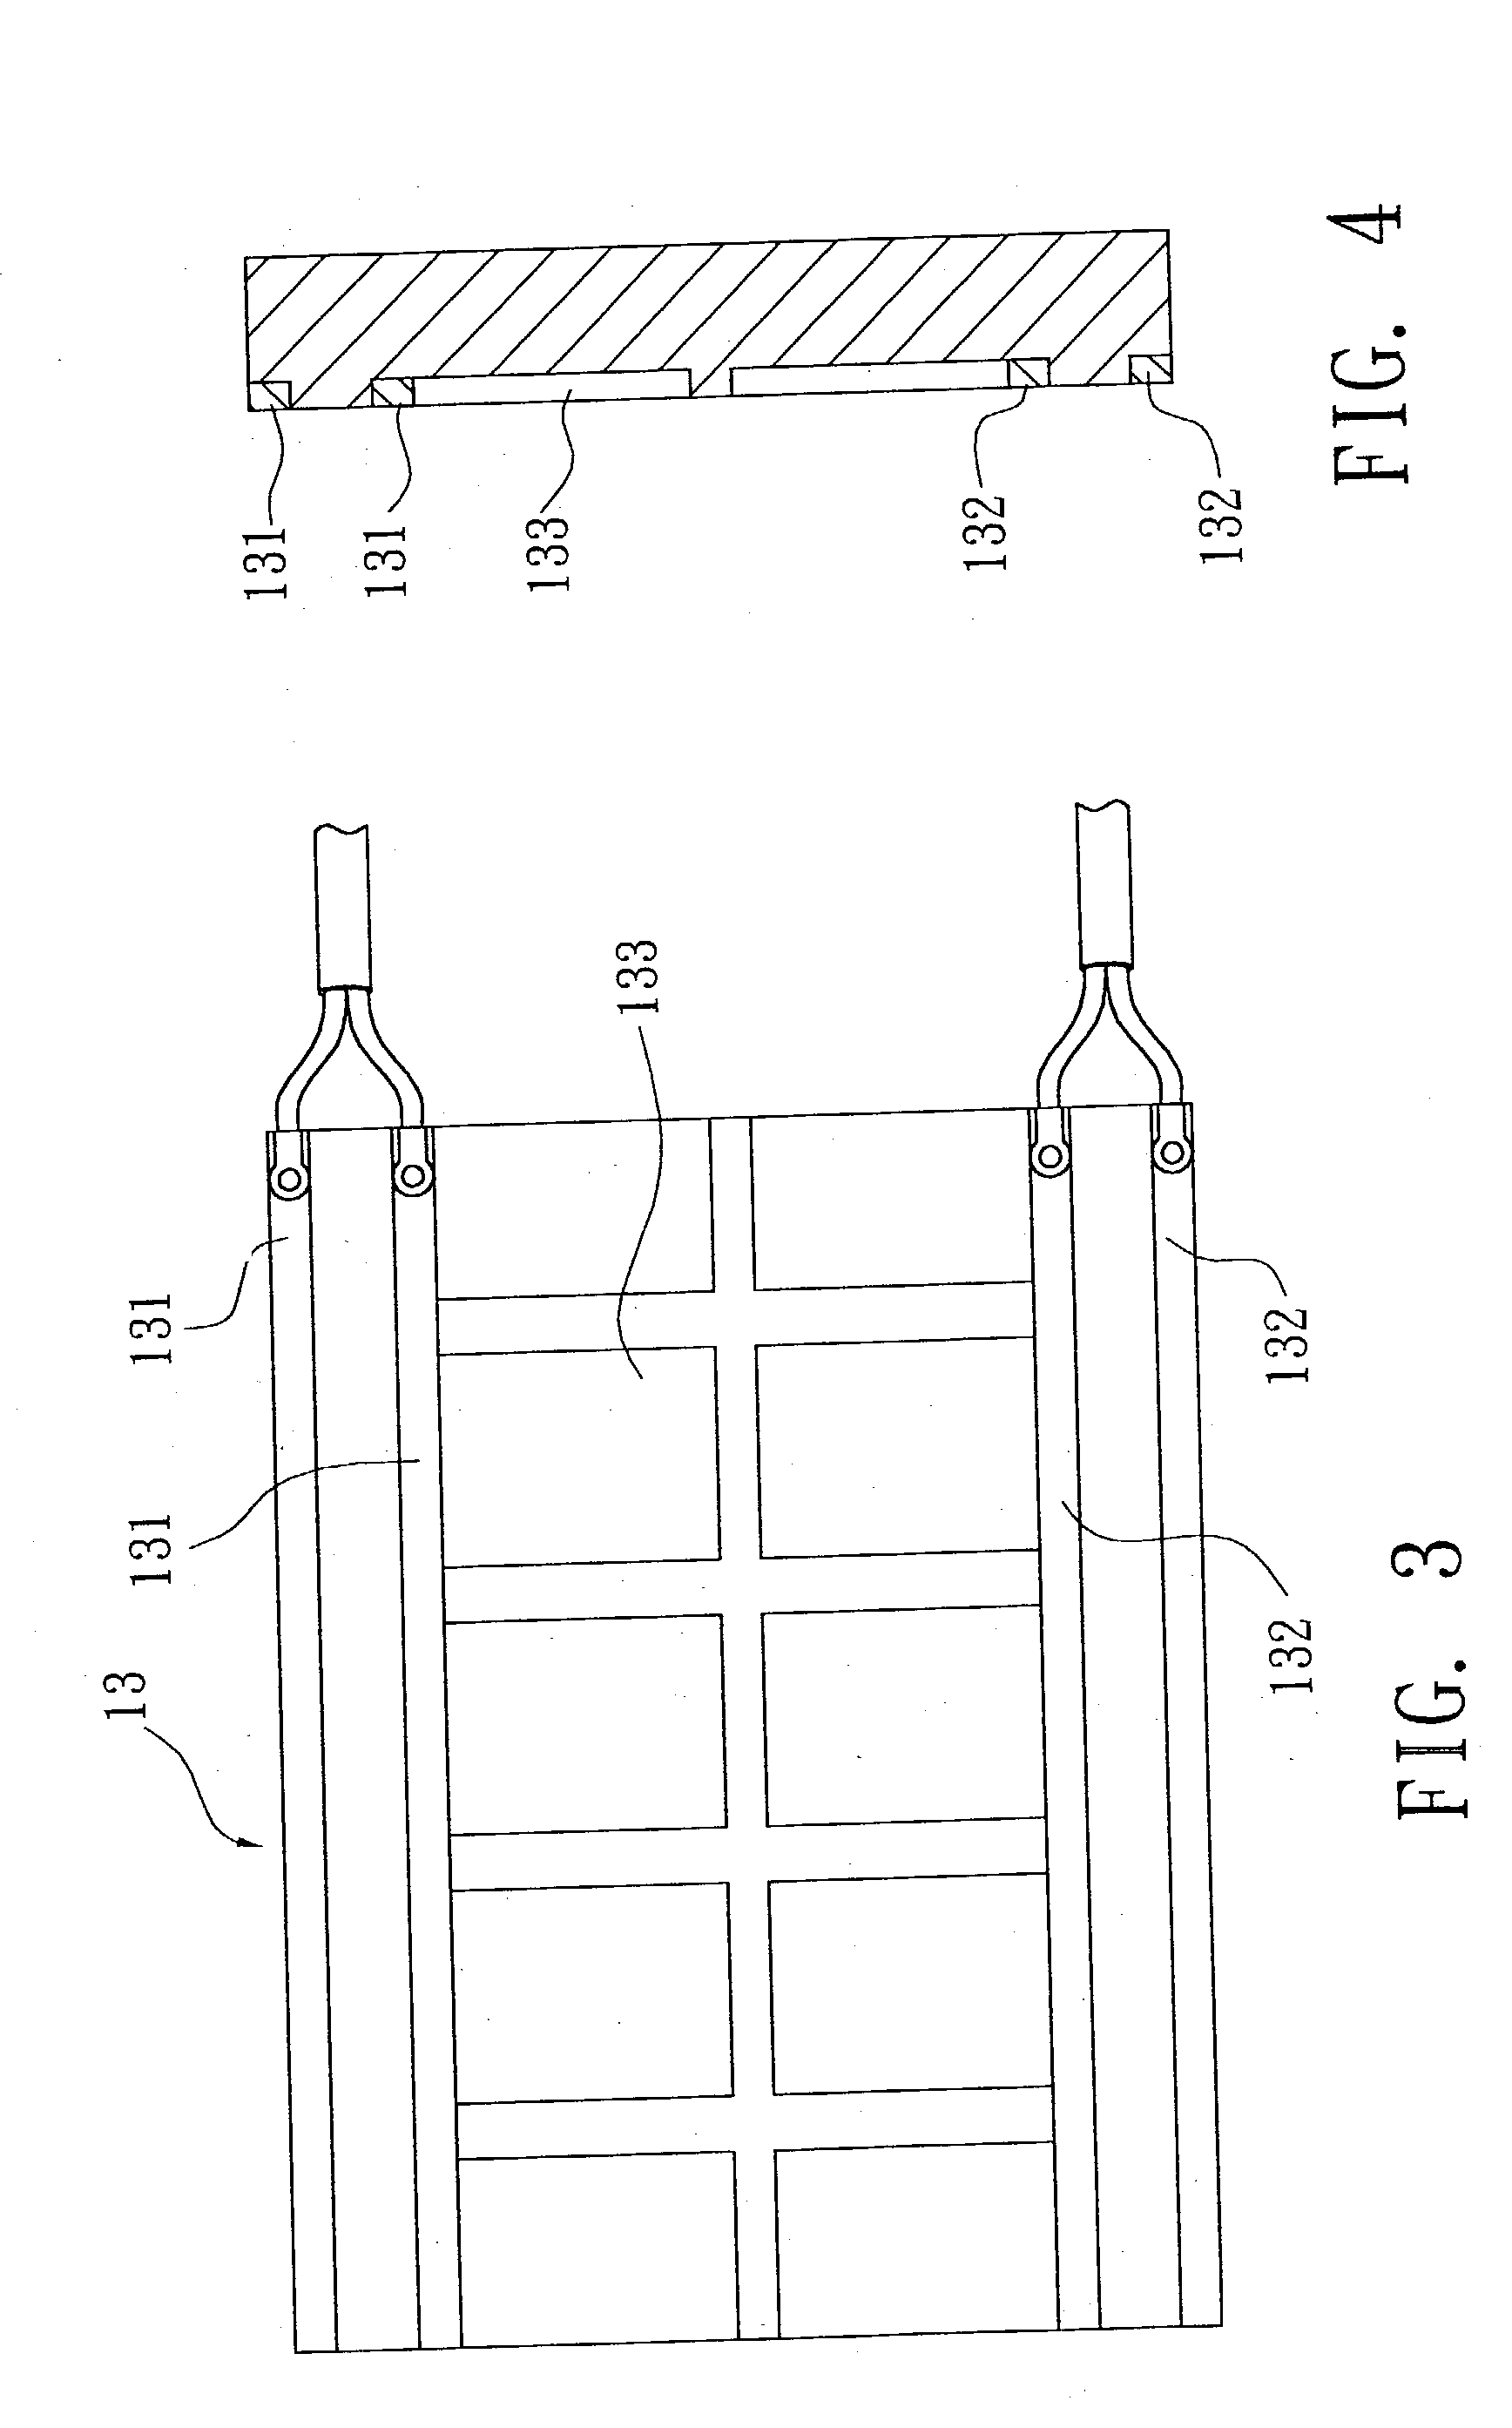 patent us20040143313 - joint protector